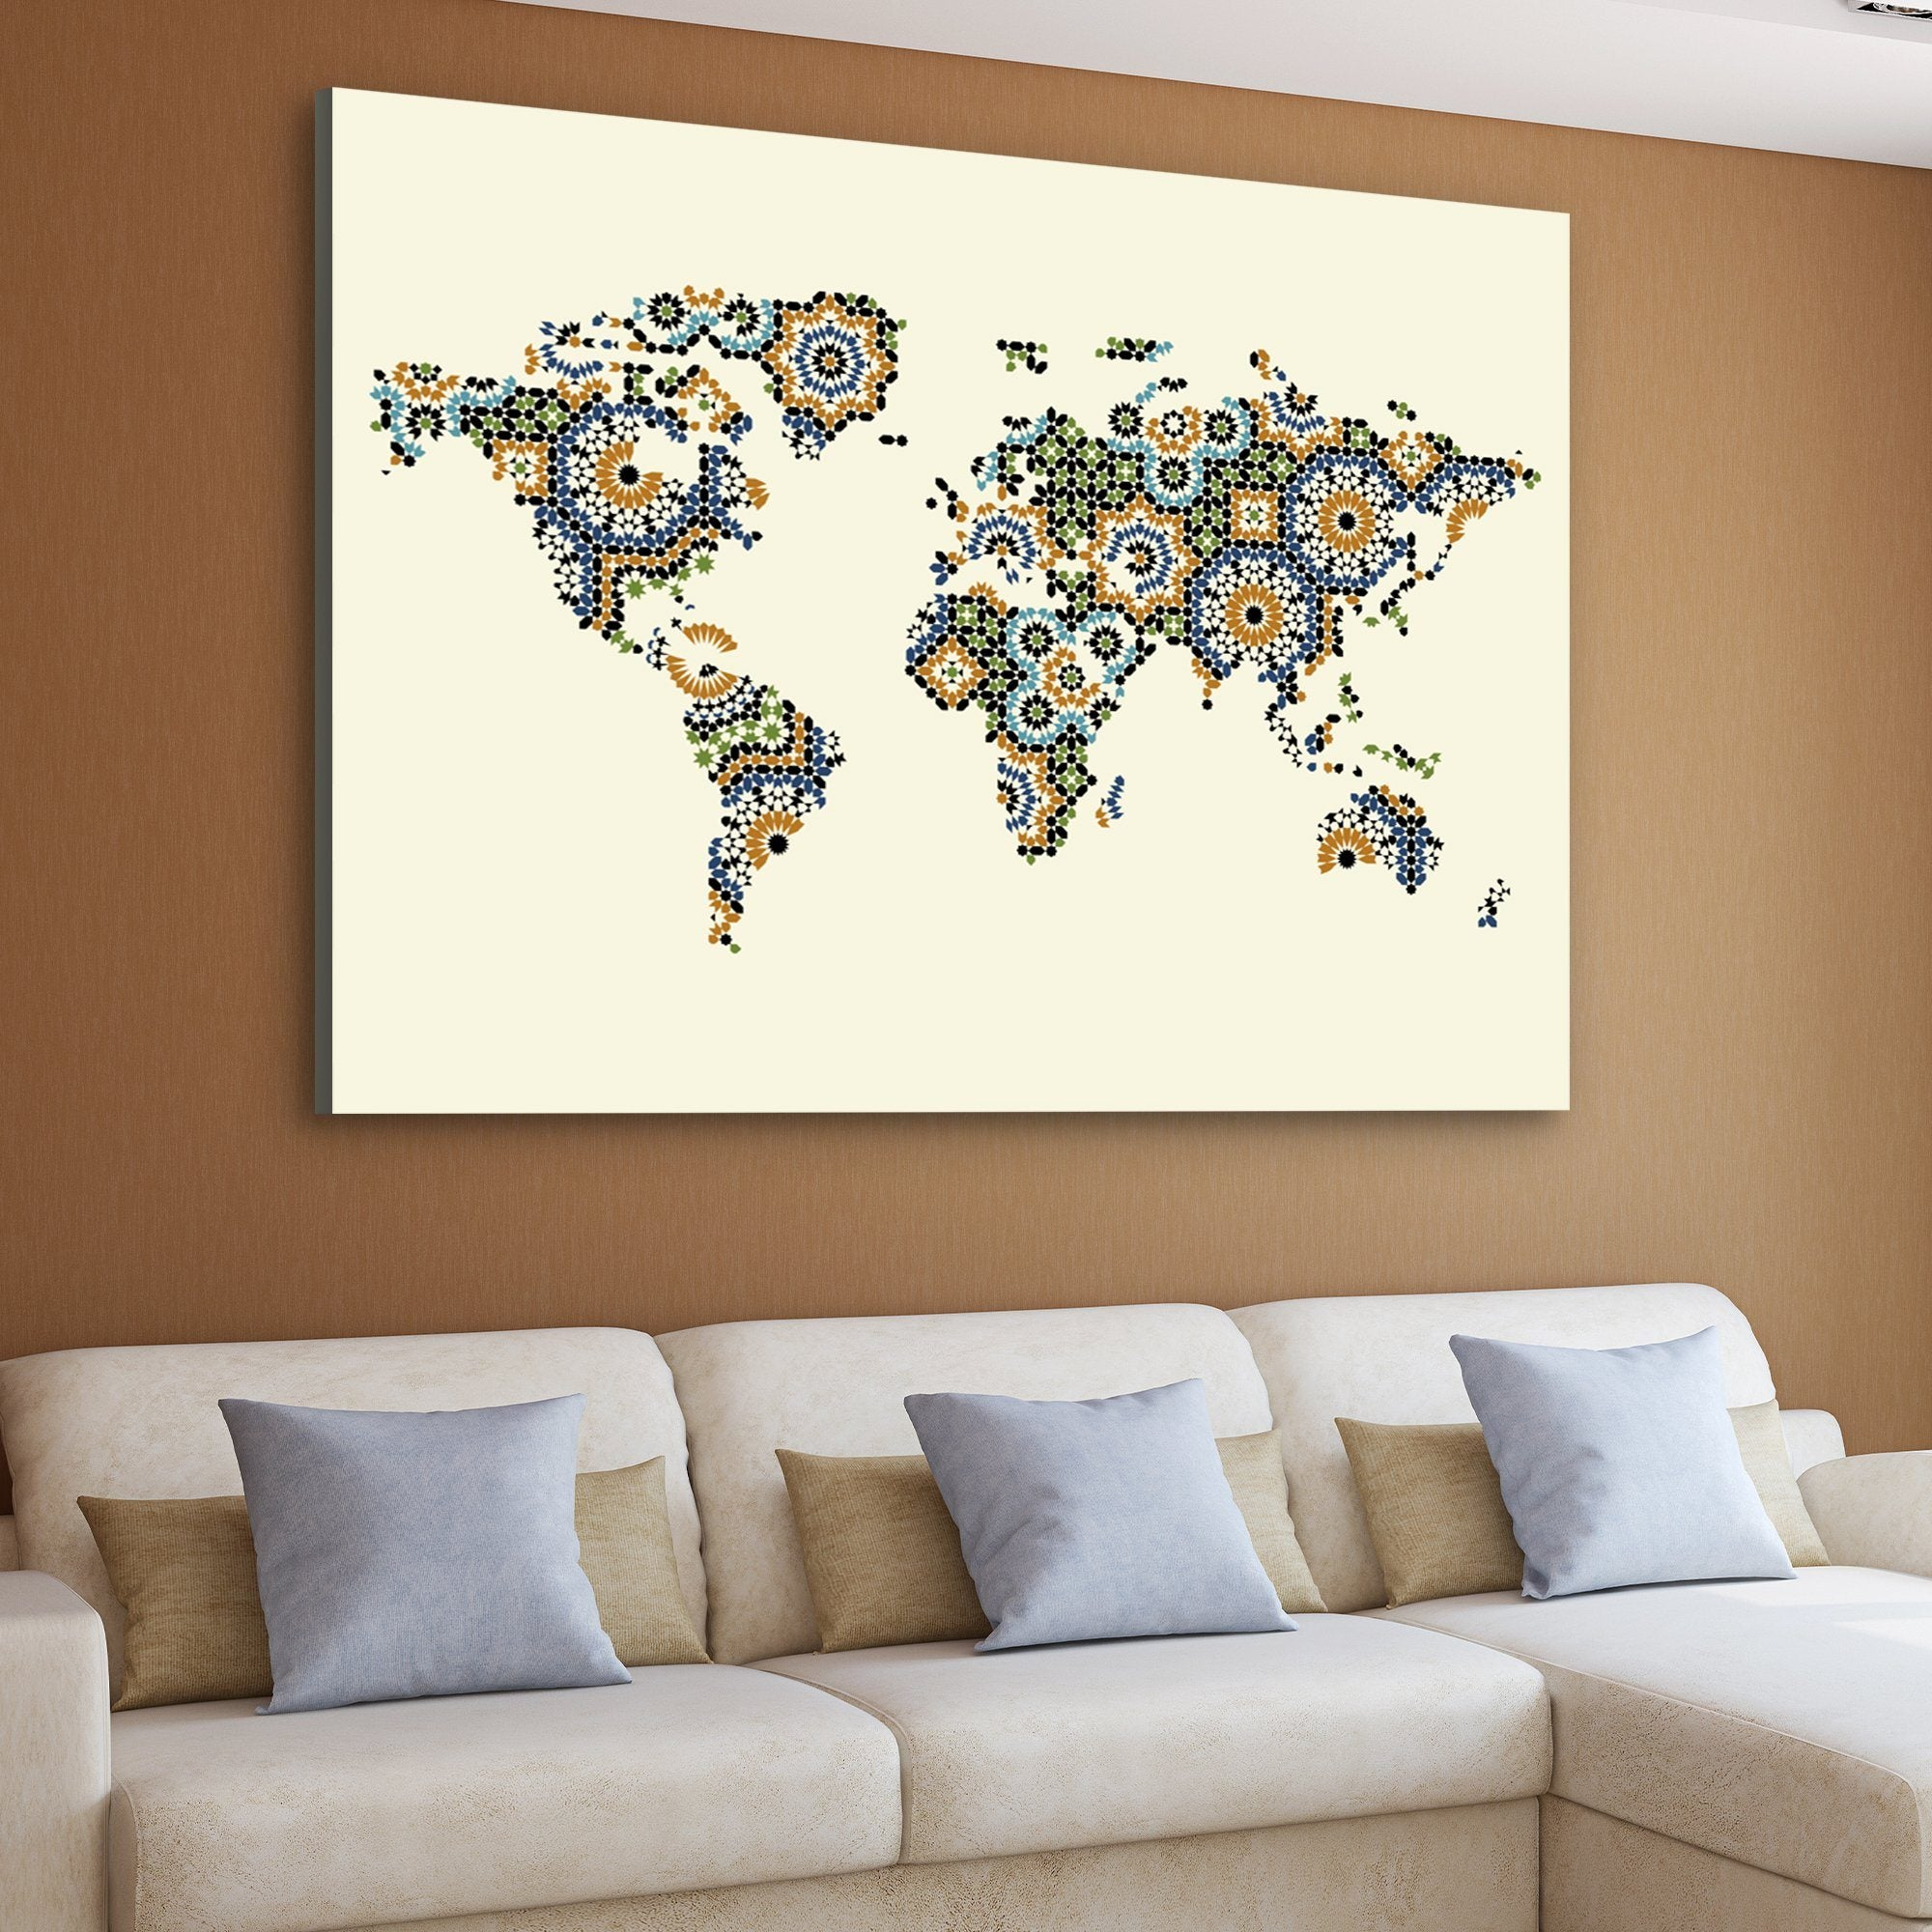 Morocco Mosaic World Map art